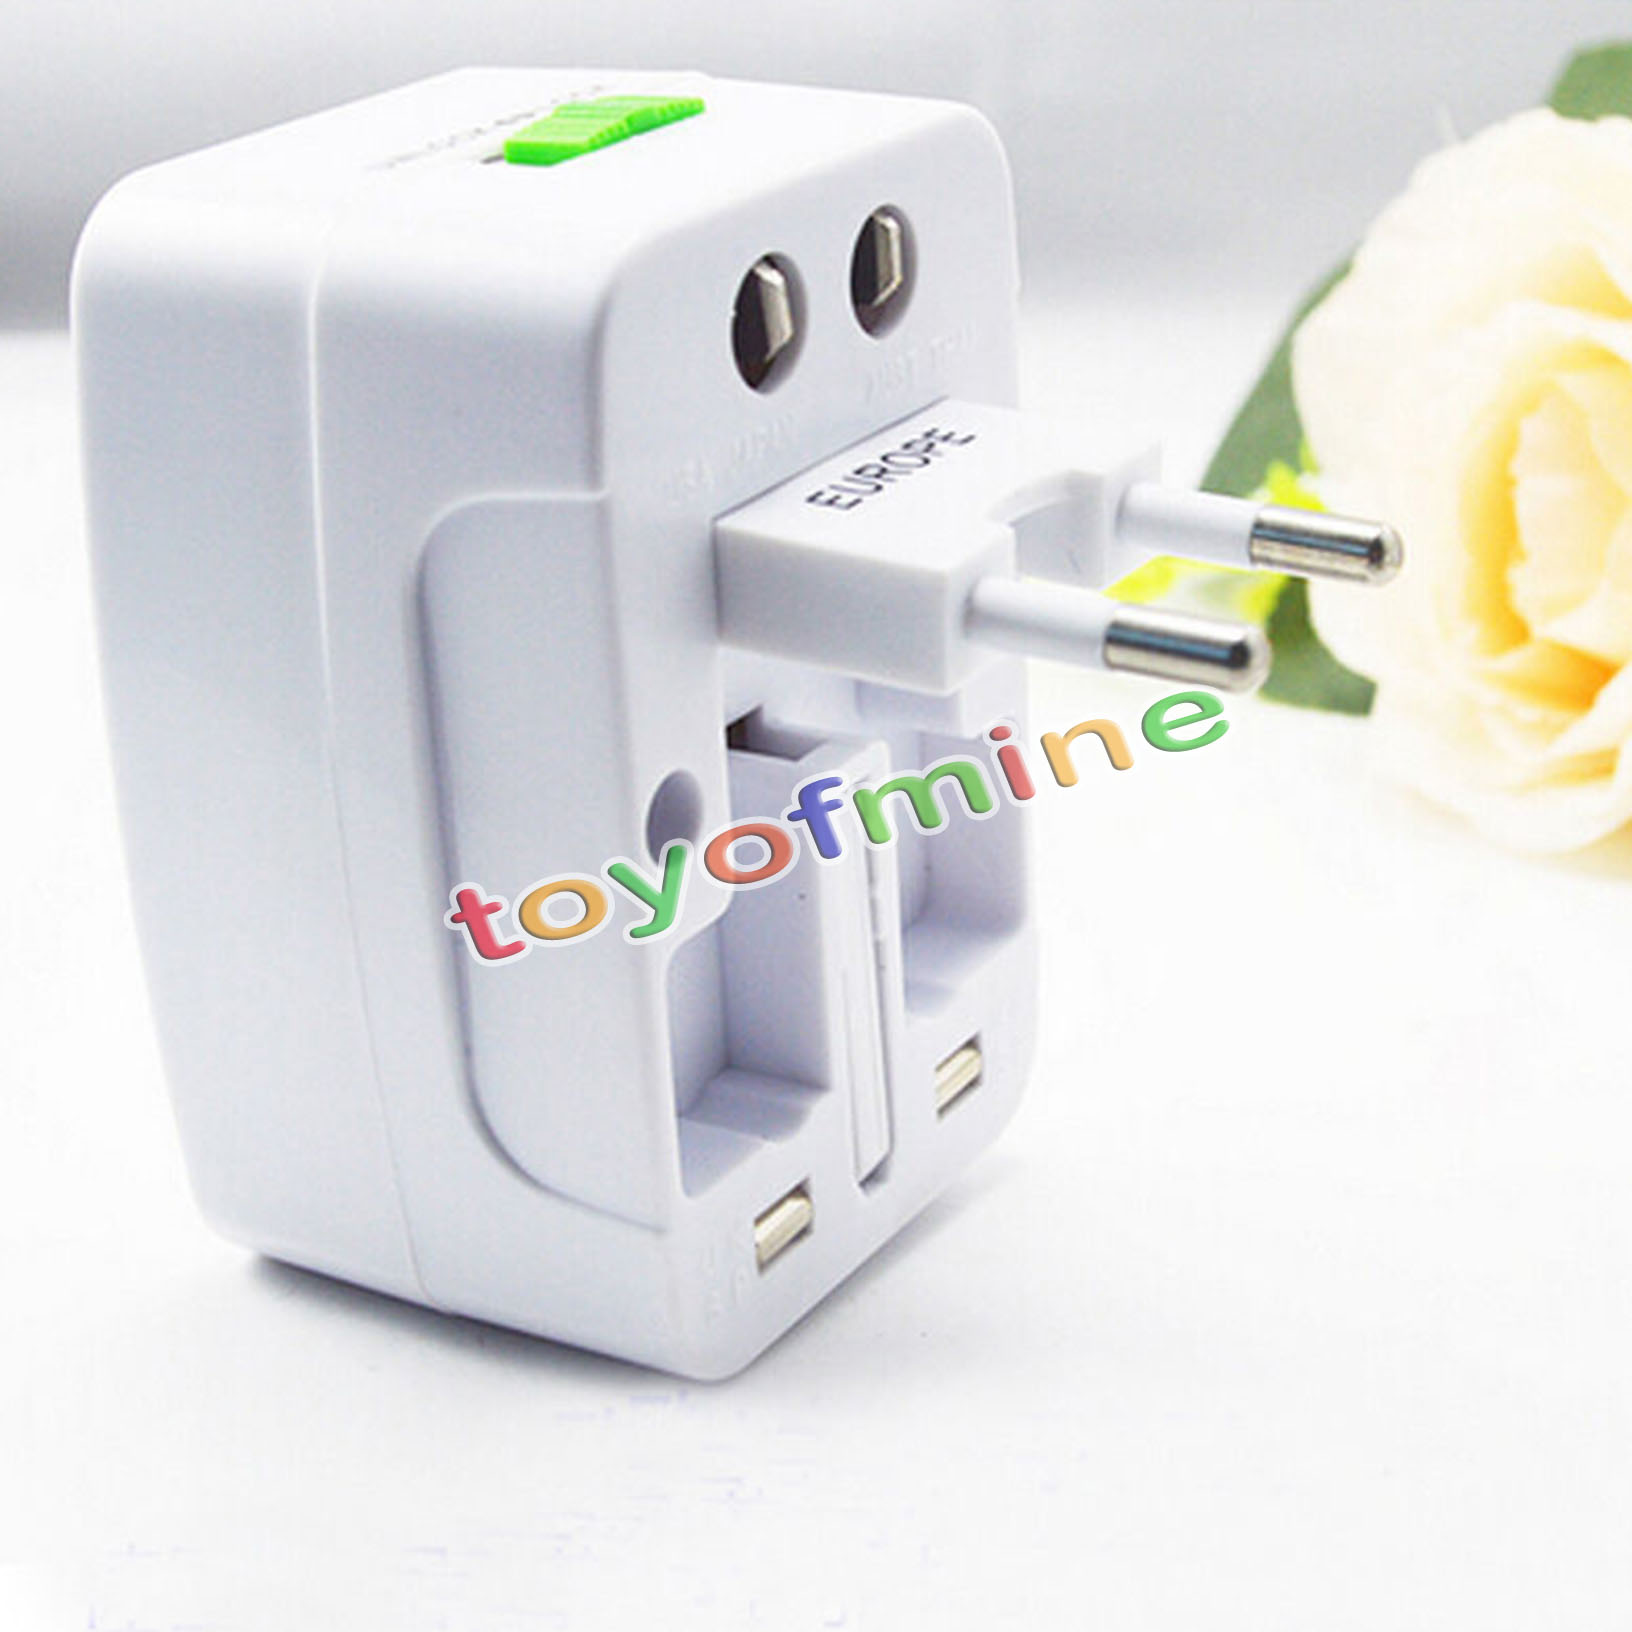 travel power 2usb ladeger t universal adapter au uk us euall inone international ebay. Black Bedroom Furniture Sets. Home Design Ideas